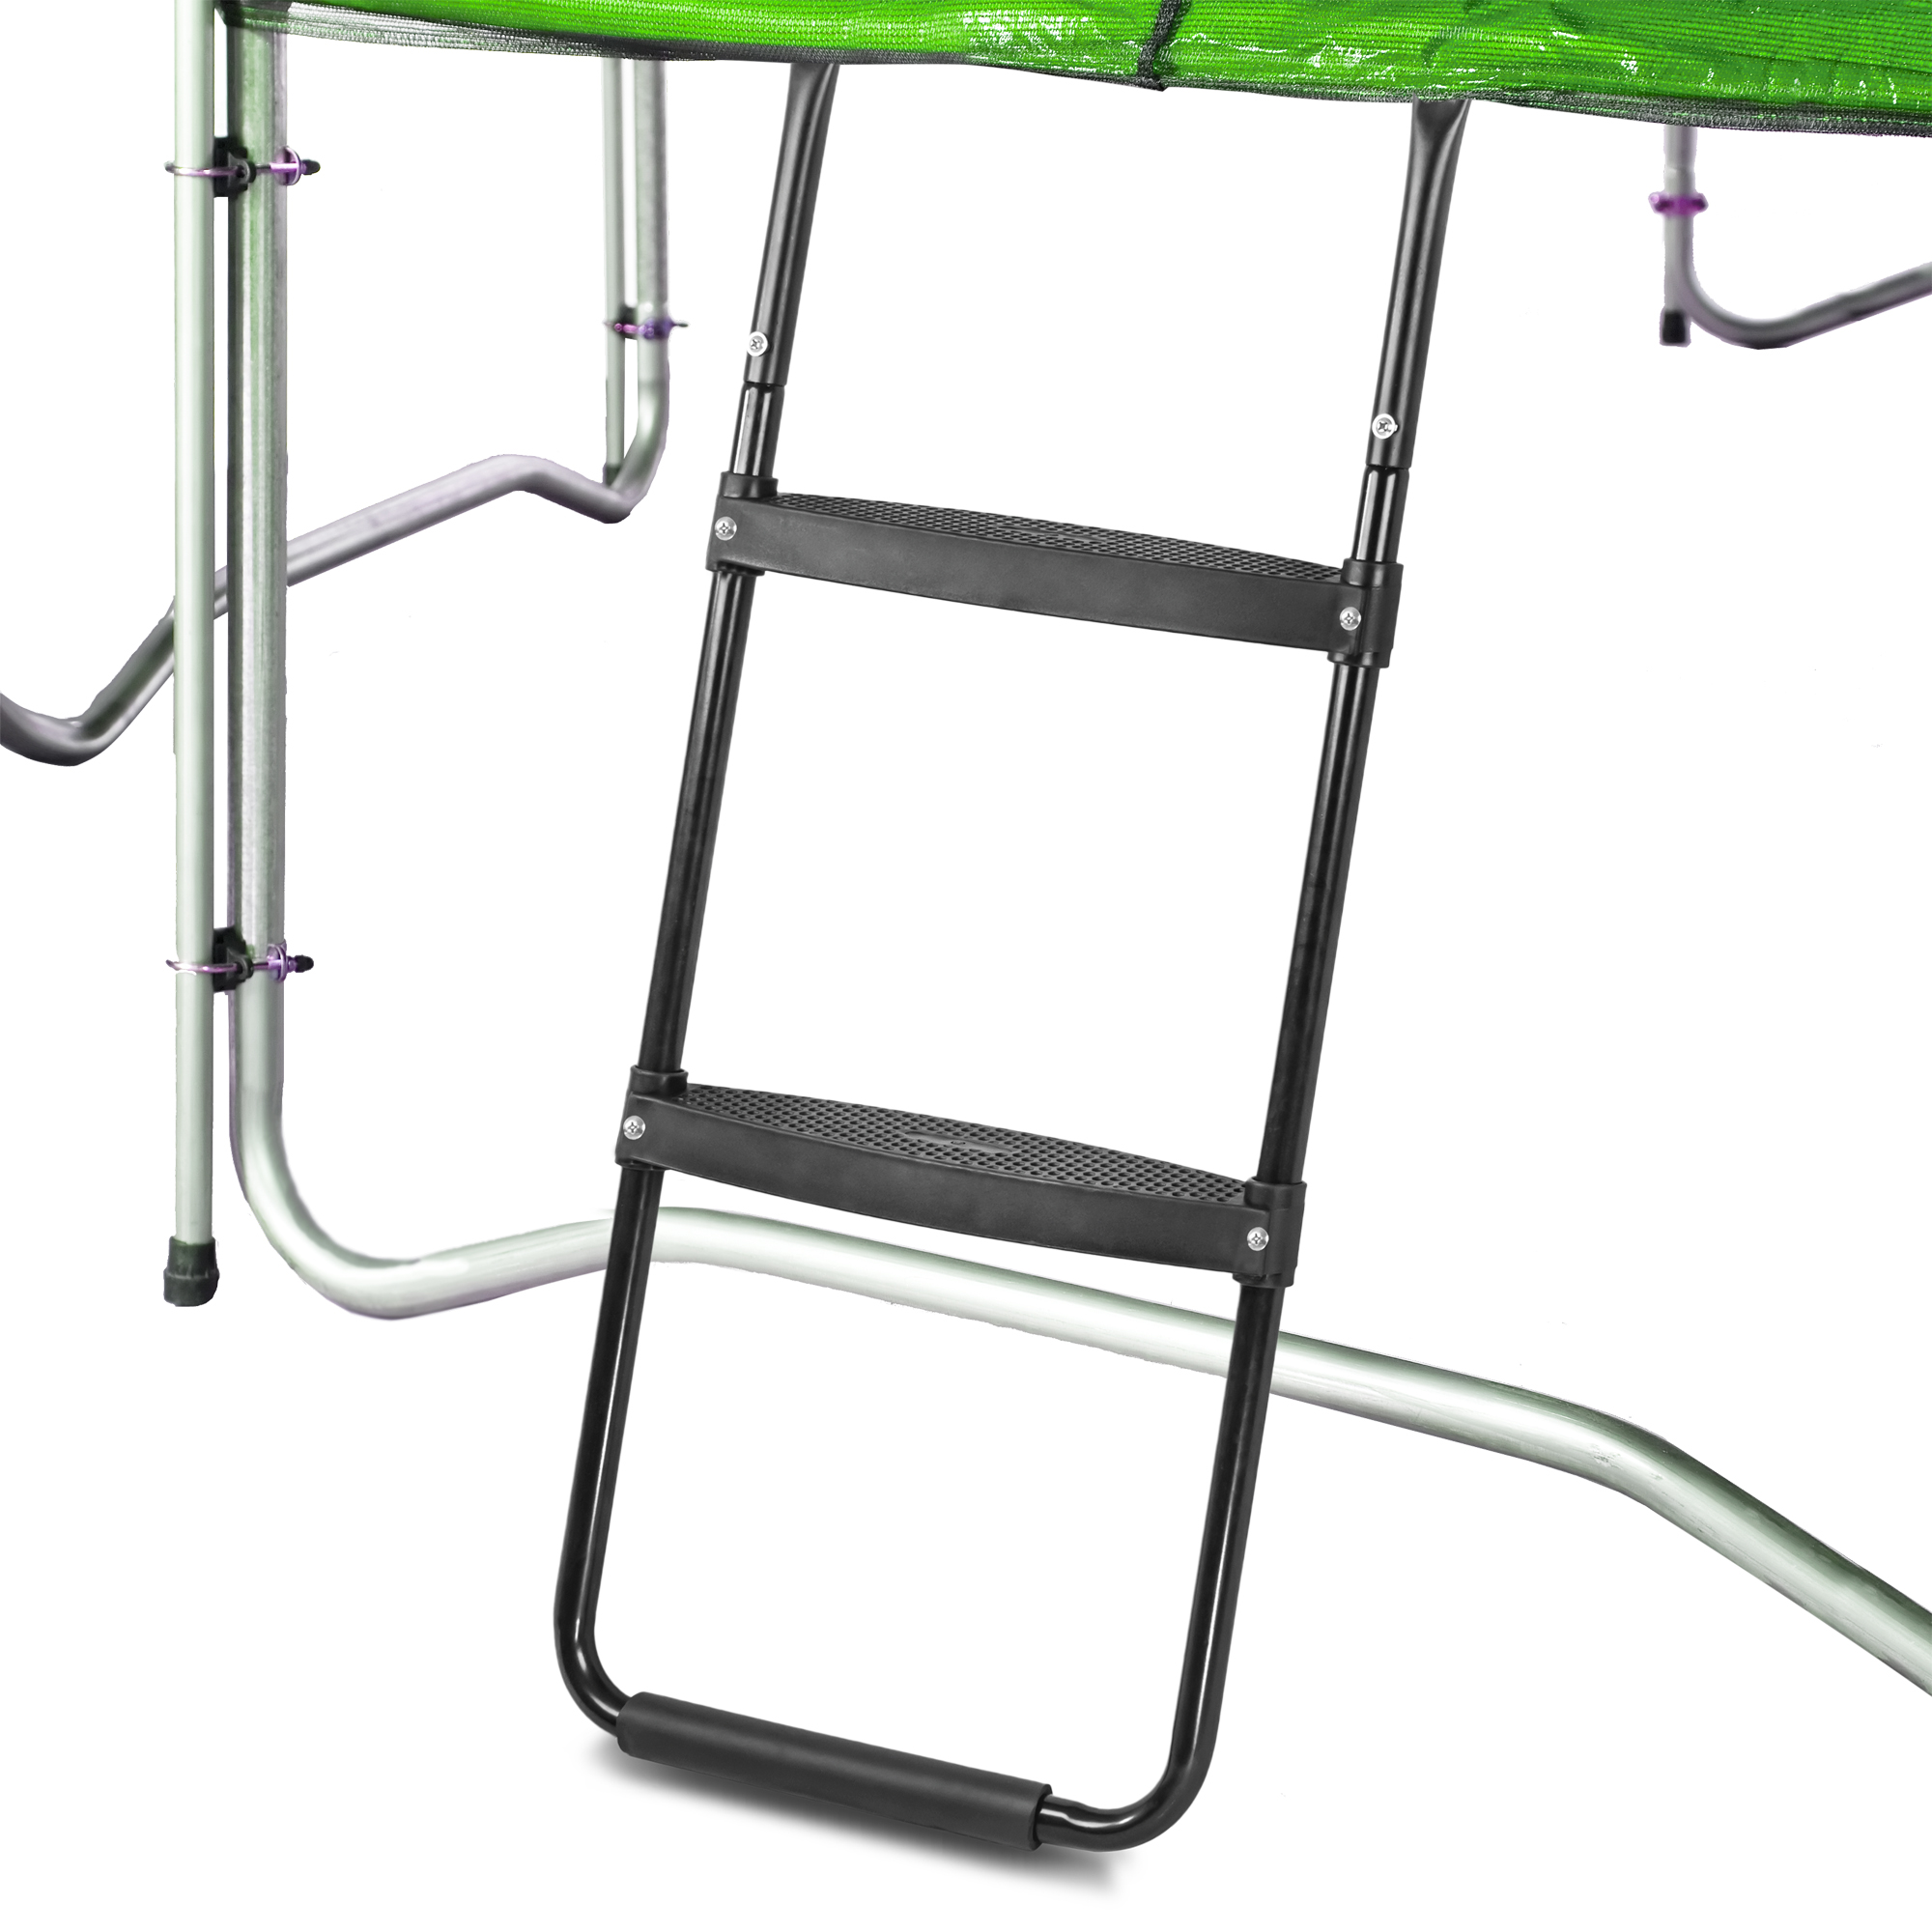 Pure Fun 39-Inch Dura-Bounce Universal Trampoline Ladder, Black